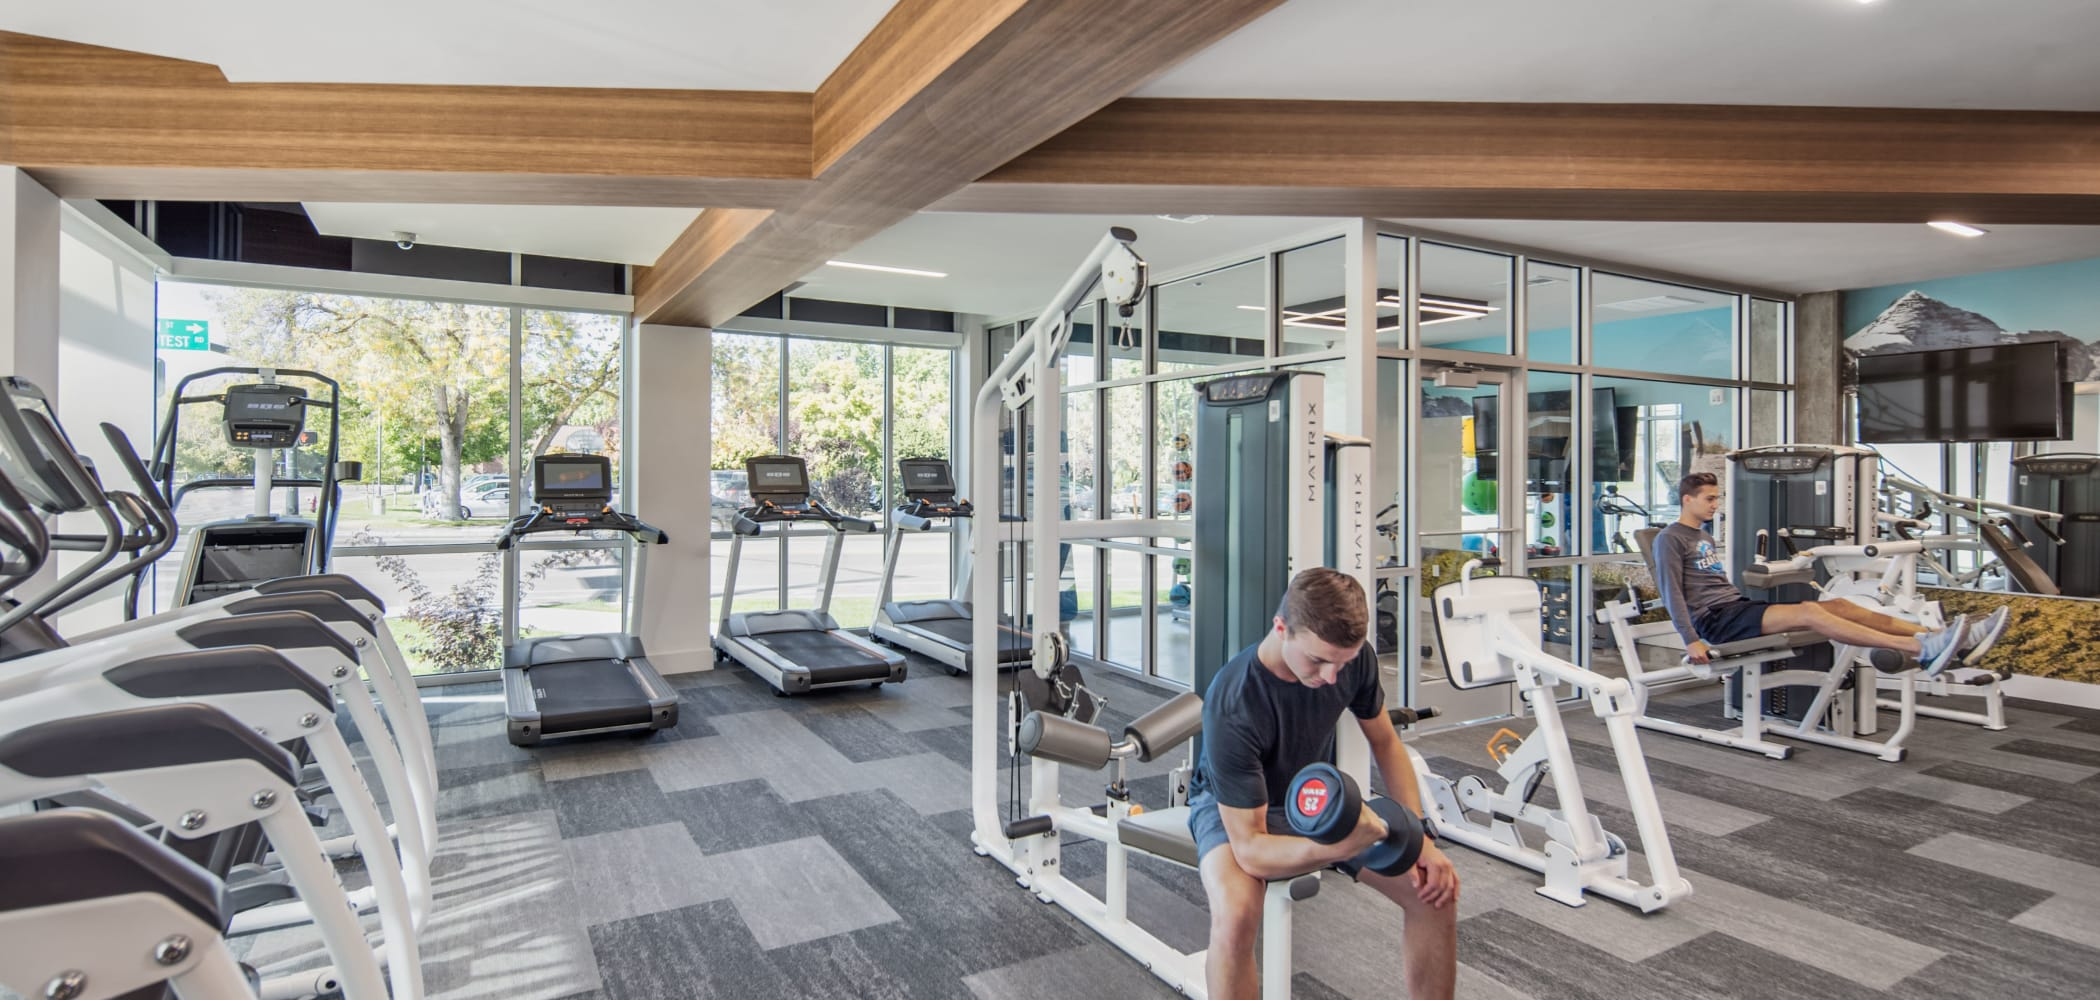 State-of-the-art fitness center at IDENTITY Boise in Boise, Idaho